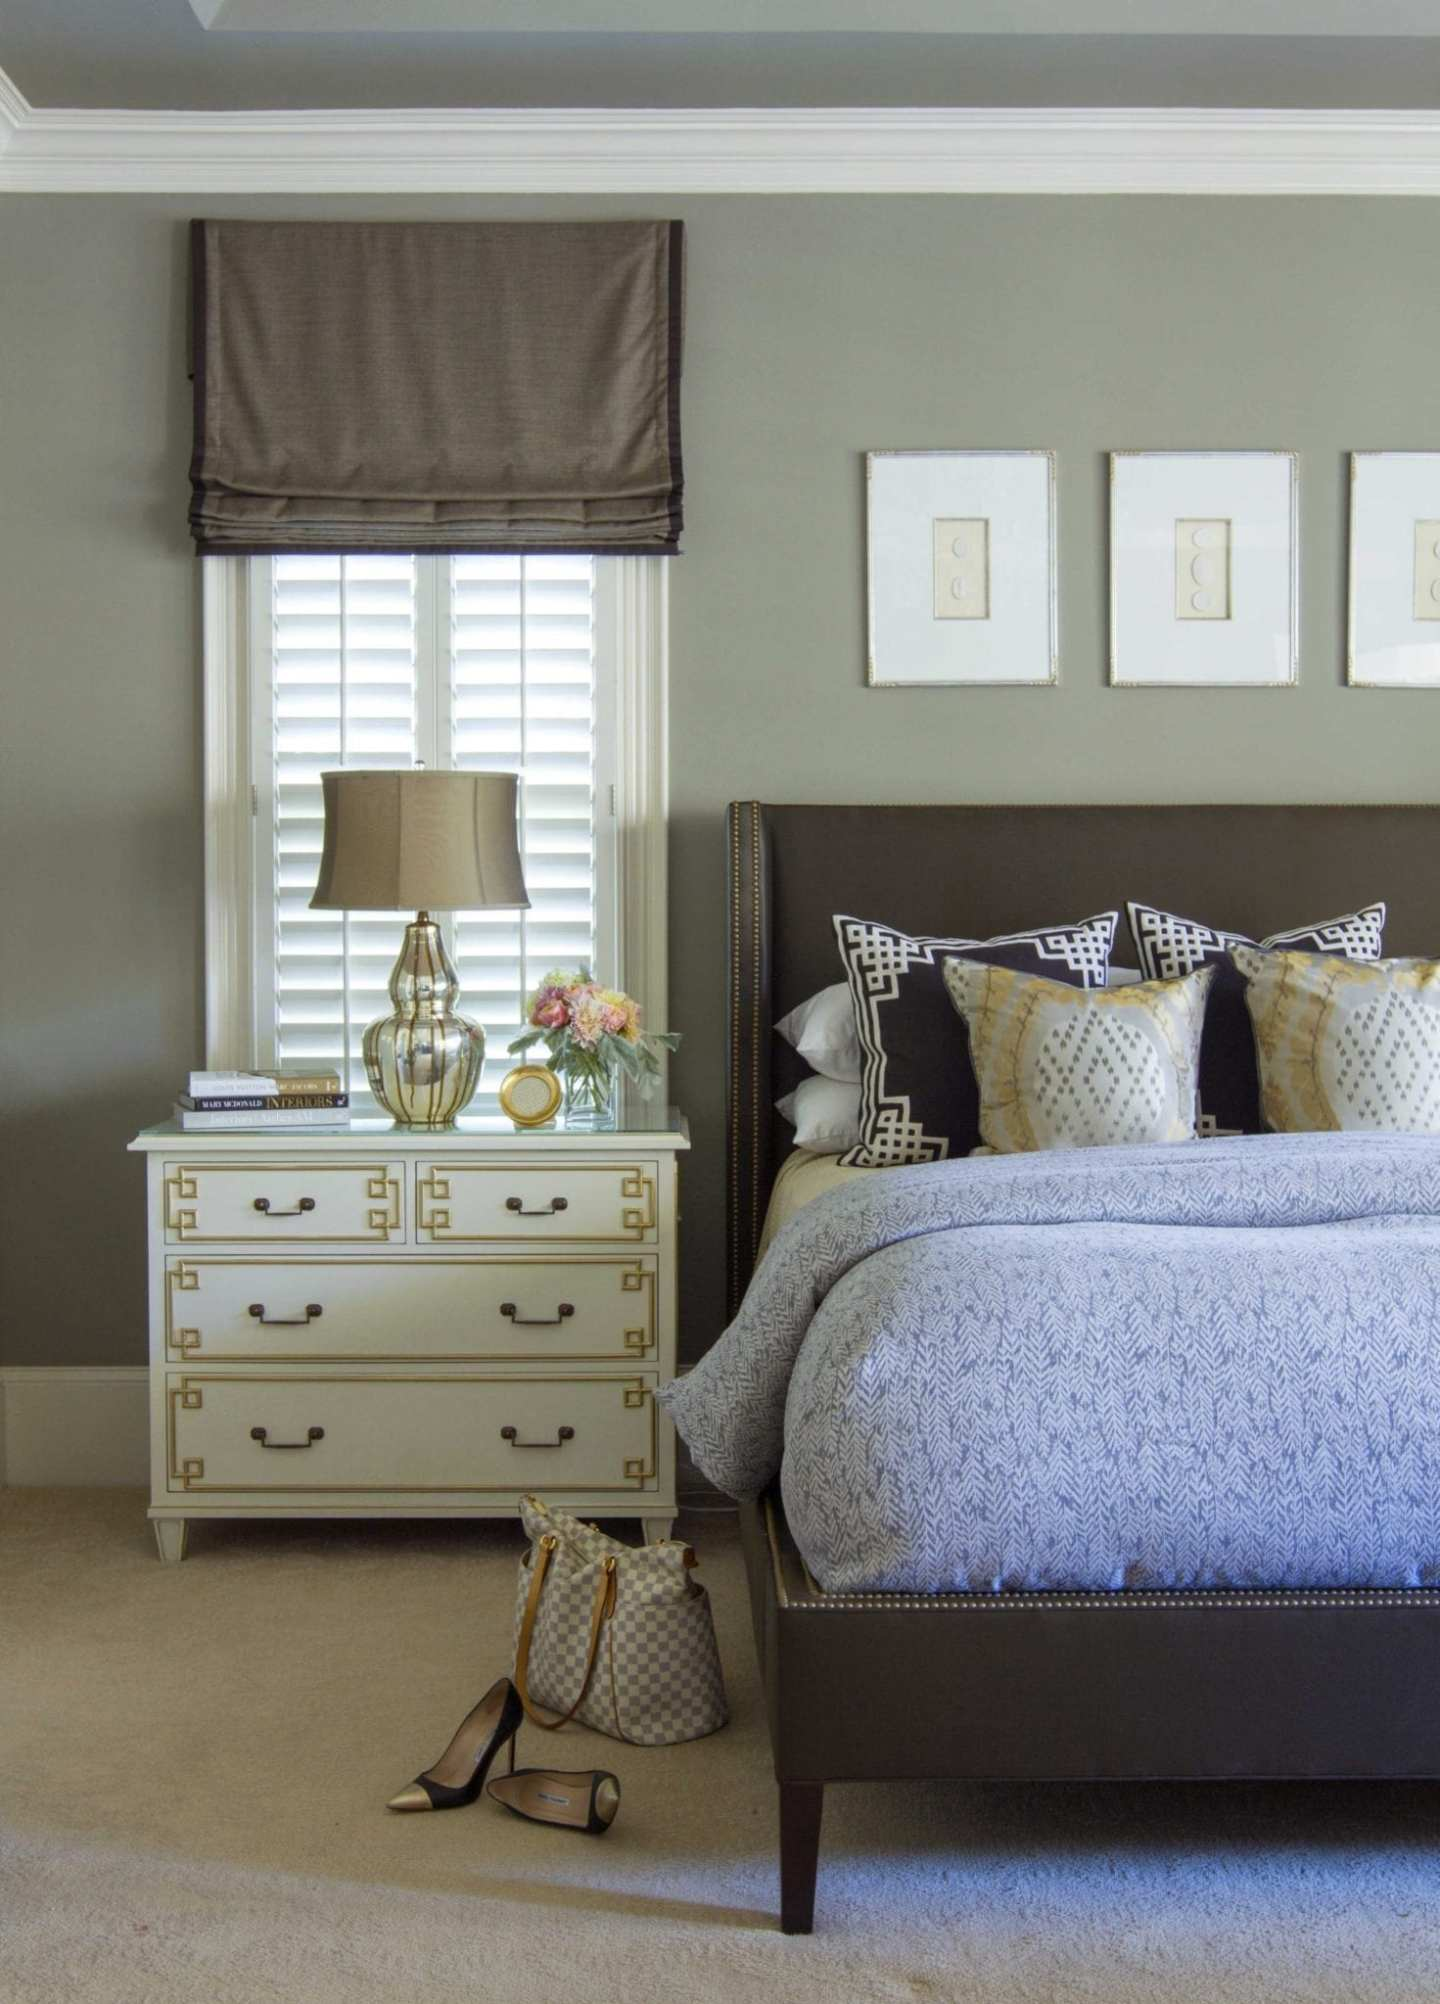 Bedrooms decorated in gray.